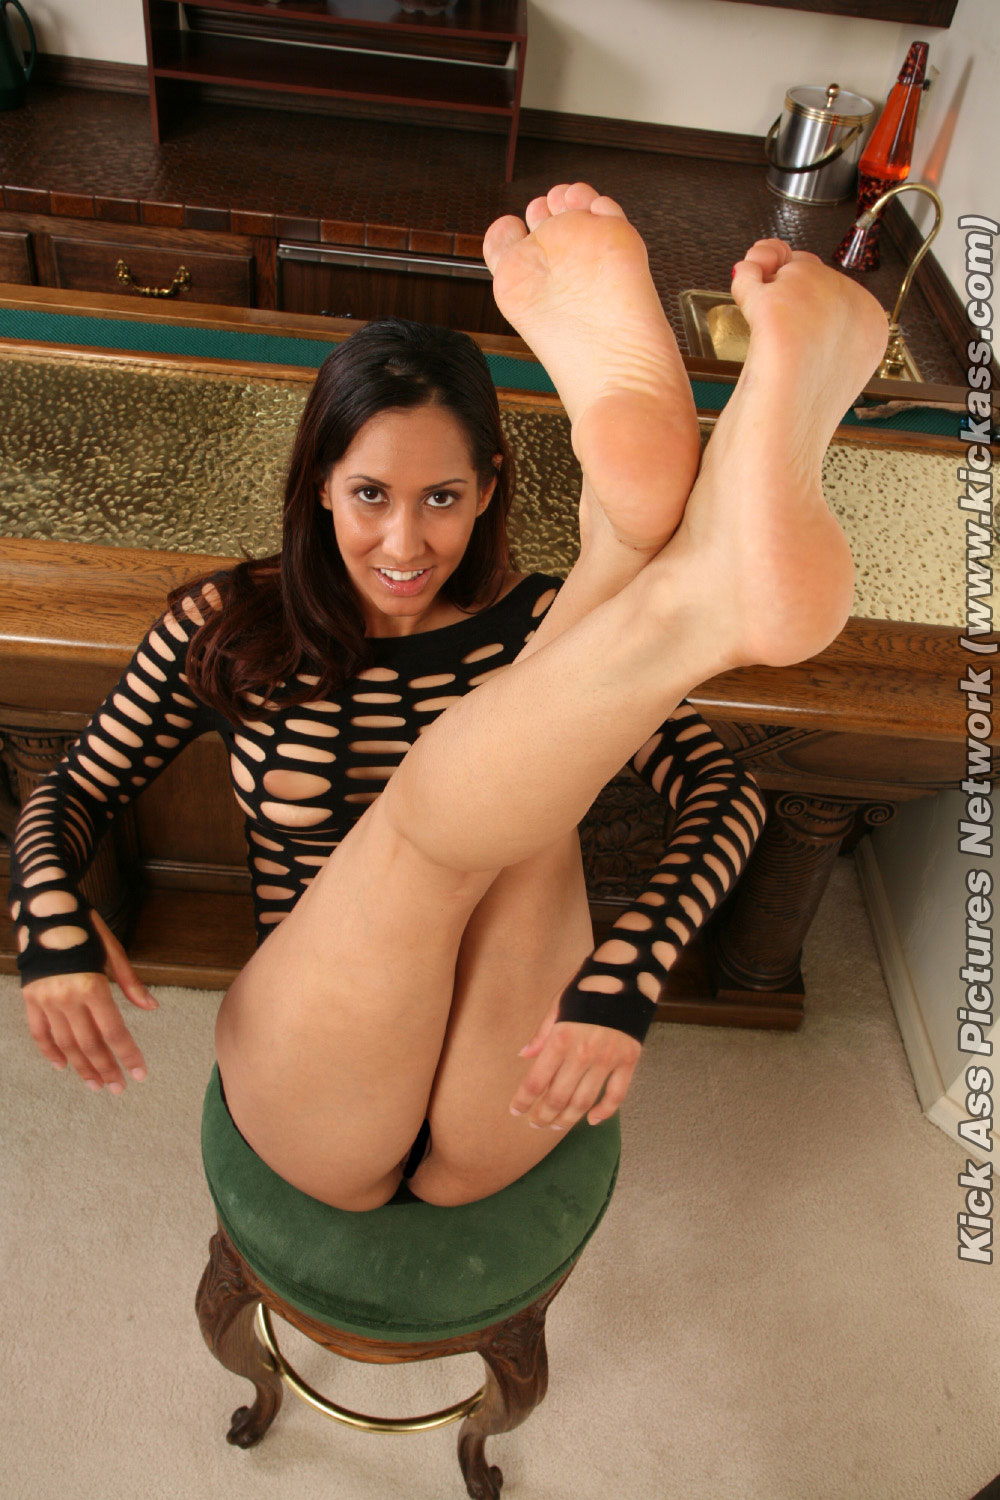 Want fuck isis love feet body